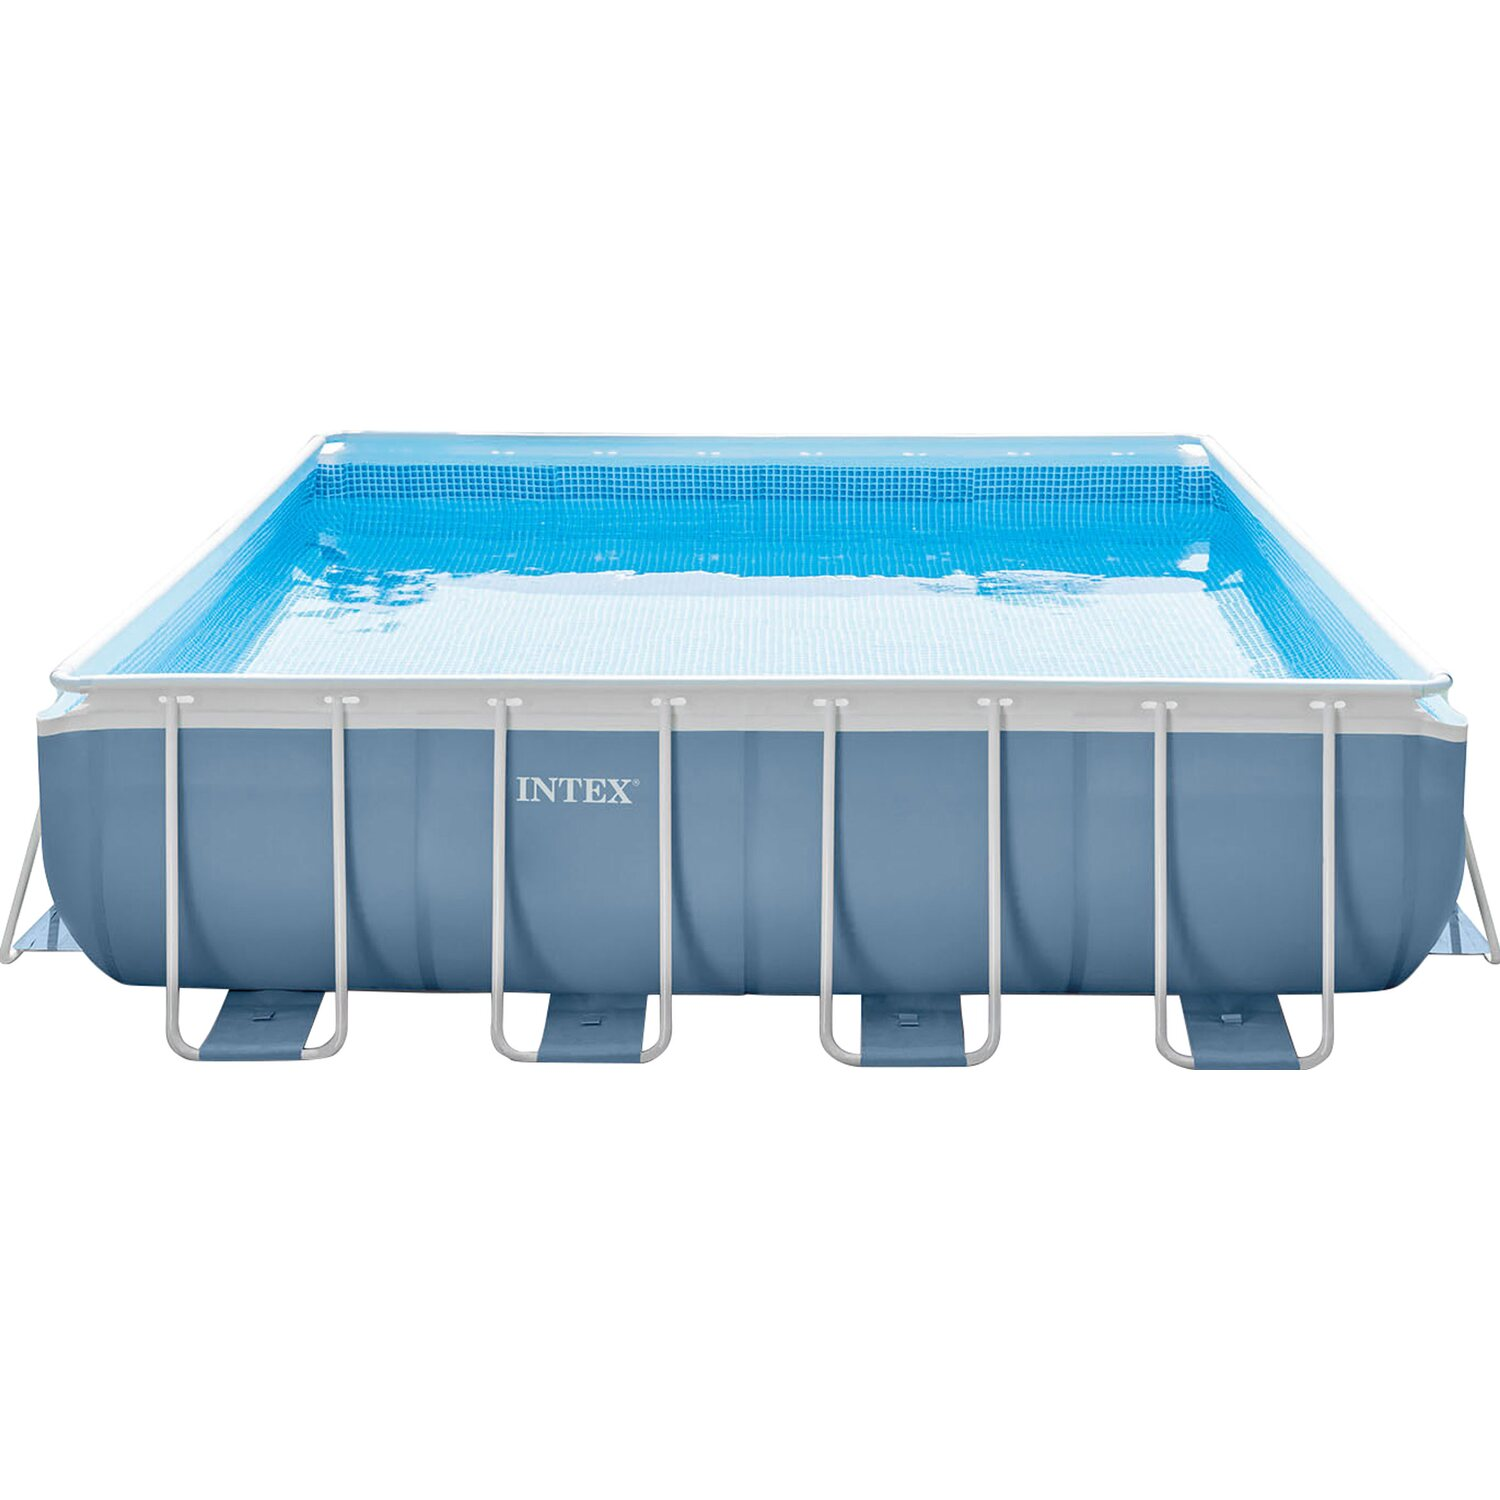 Intex piscina prisma frame quadrata 427 cm x 427 cm x 107 for Intex piscine catalogo